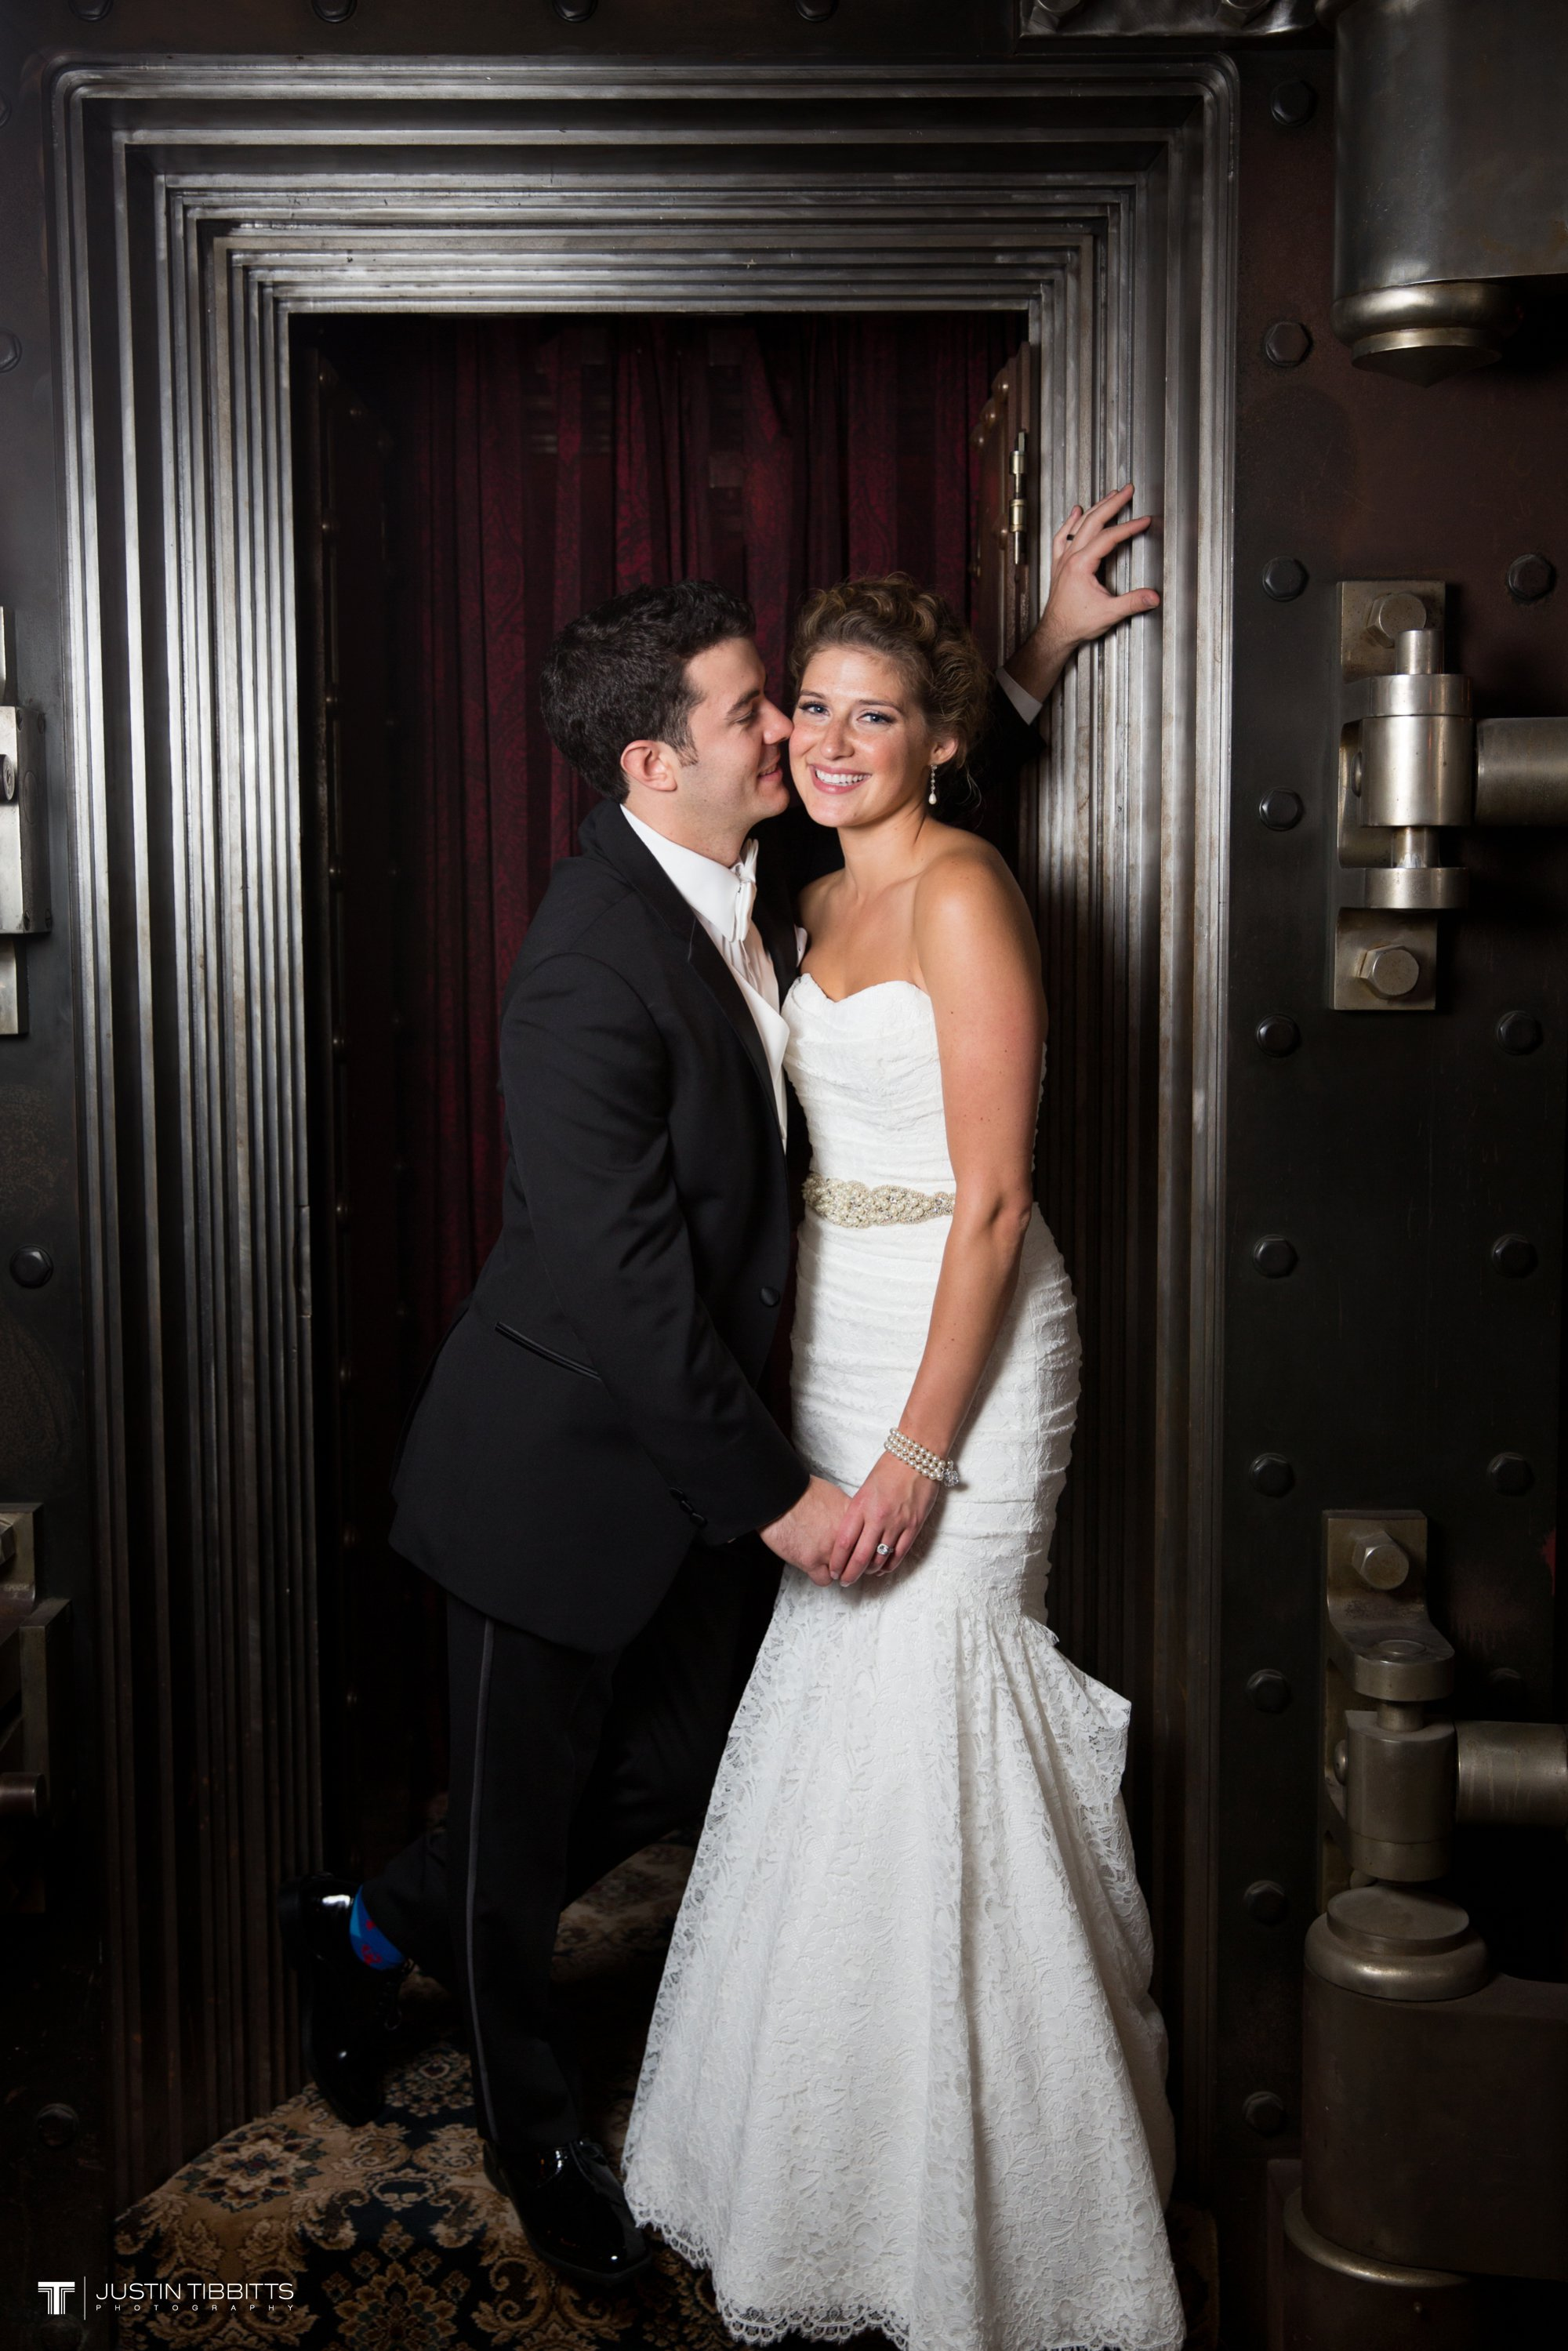 Justin Tibbitts Photography Nick and Sam Franklin Plaza, Troy, NY Wedding-817